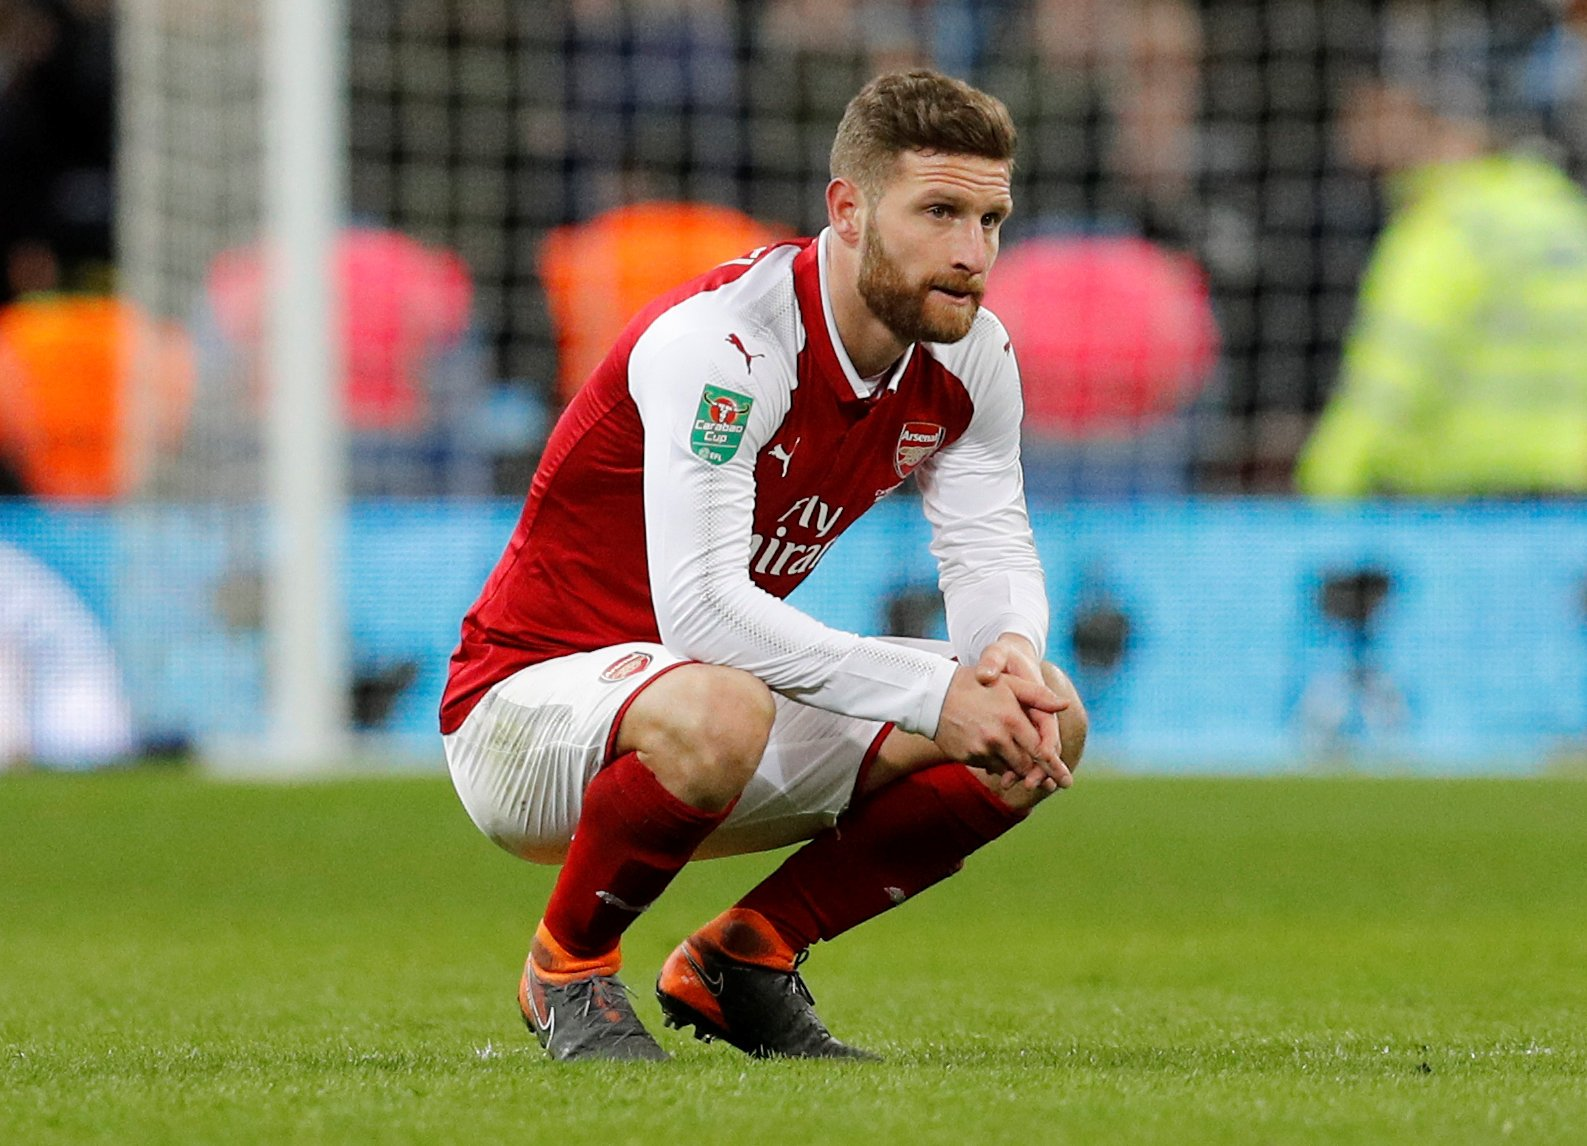 Mustafi's loss of form should not come to symbolise Arsenal's failings